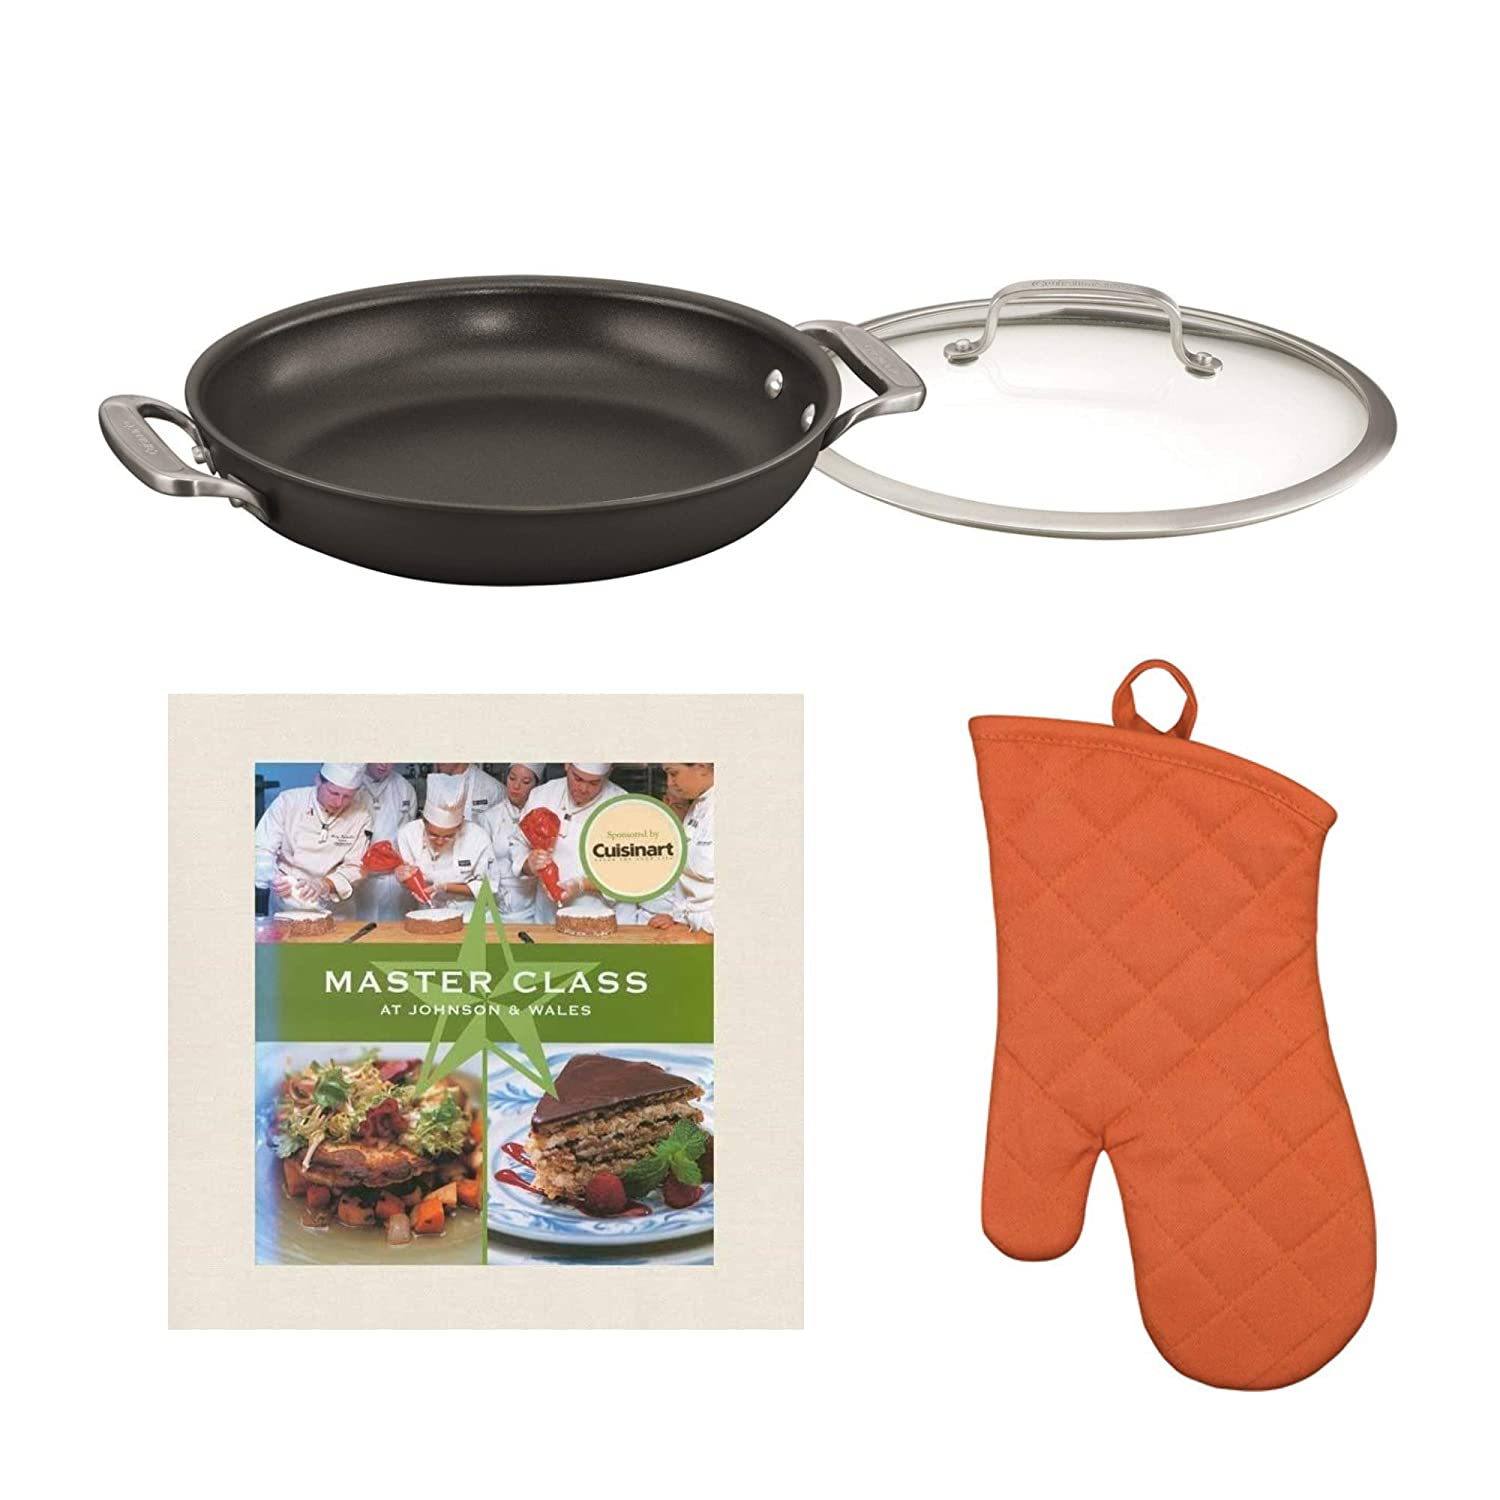 Cuisinart DS Induction Ready Hard Anodized 5-Quart Dutch Oven & Cover with Oven Mitt & Master Class Cookbook (3 Items)